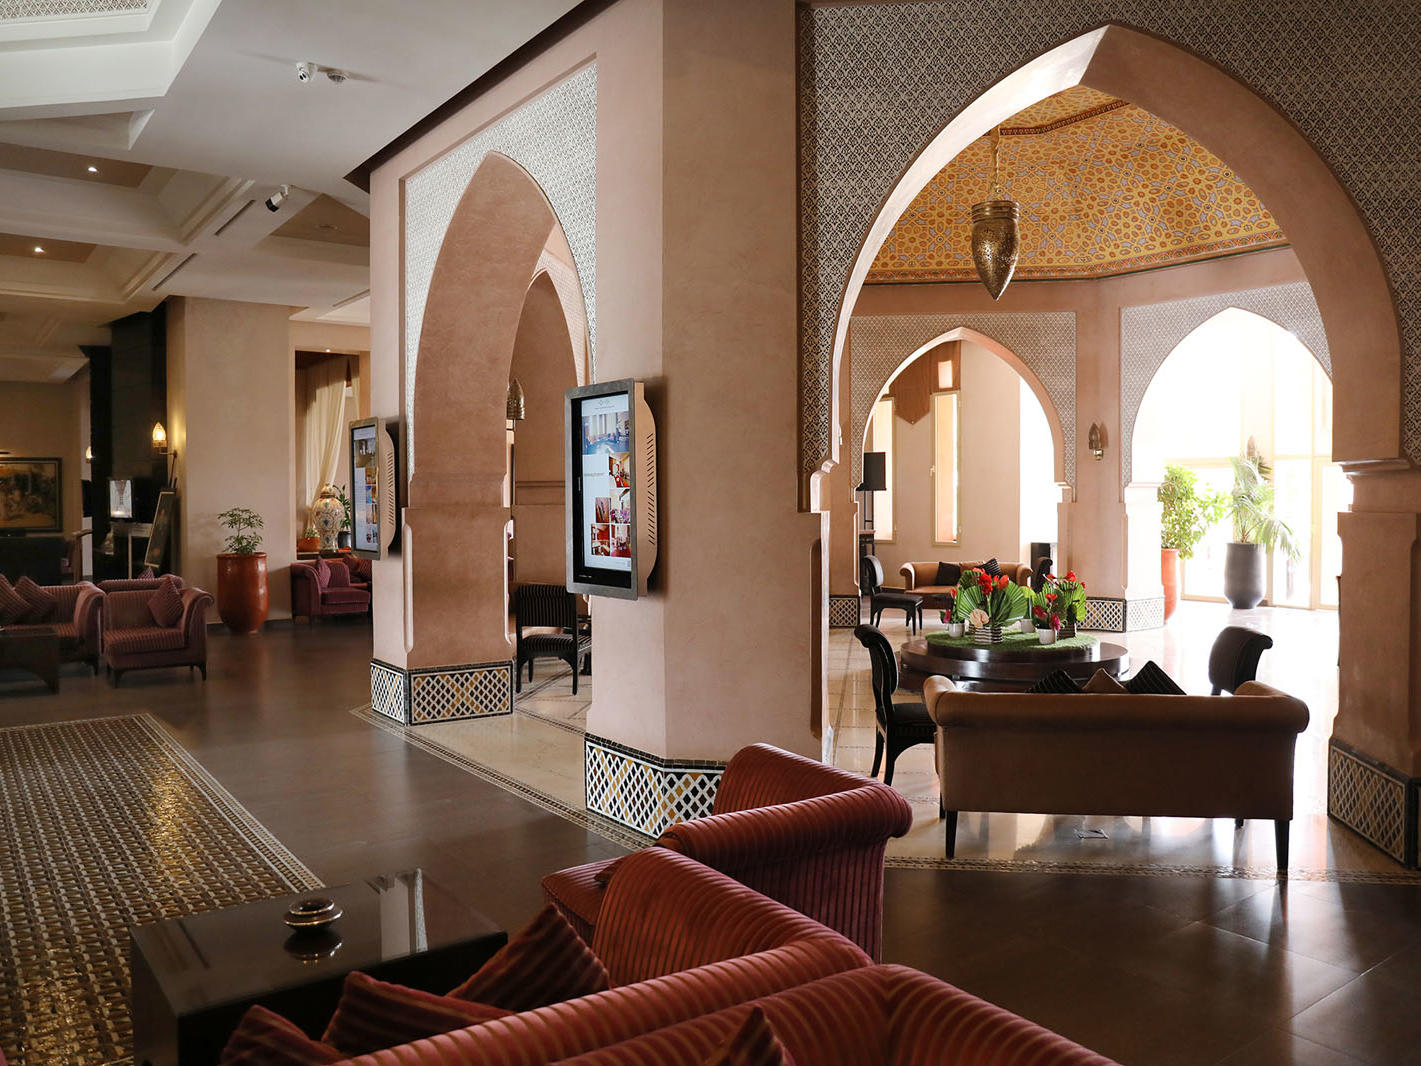 Lobby at Kenzi Menara Palace in Marrakesh, Morocco